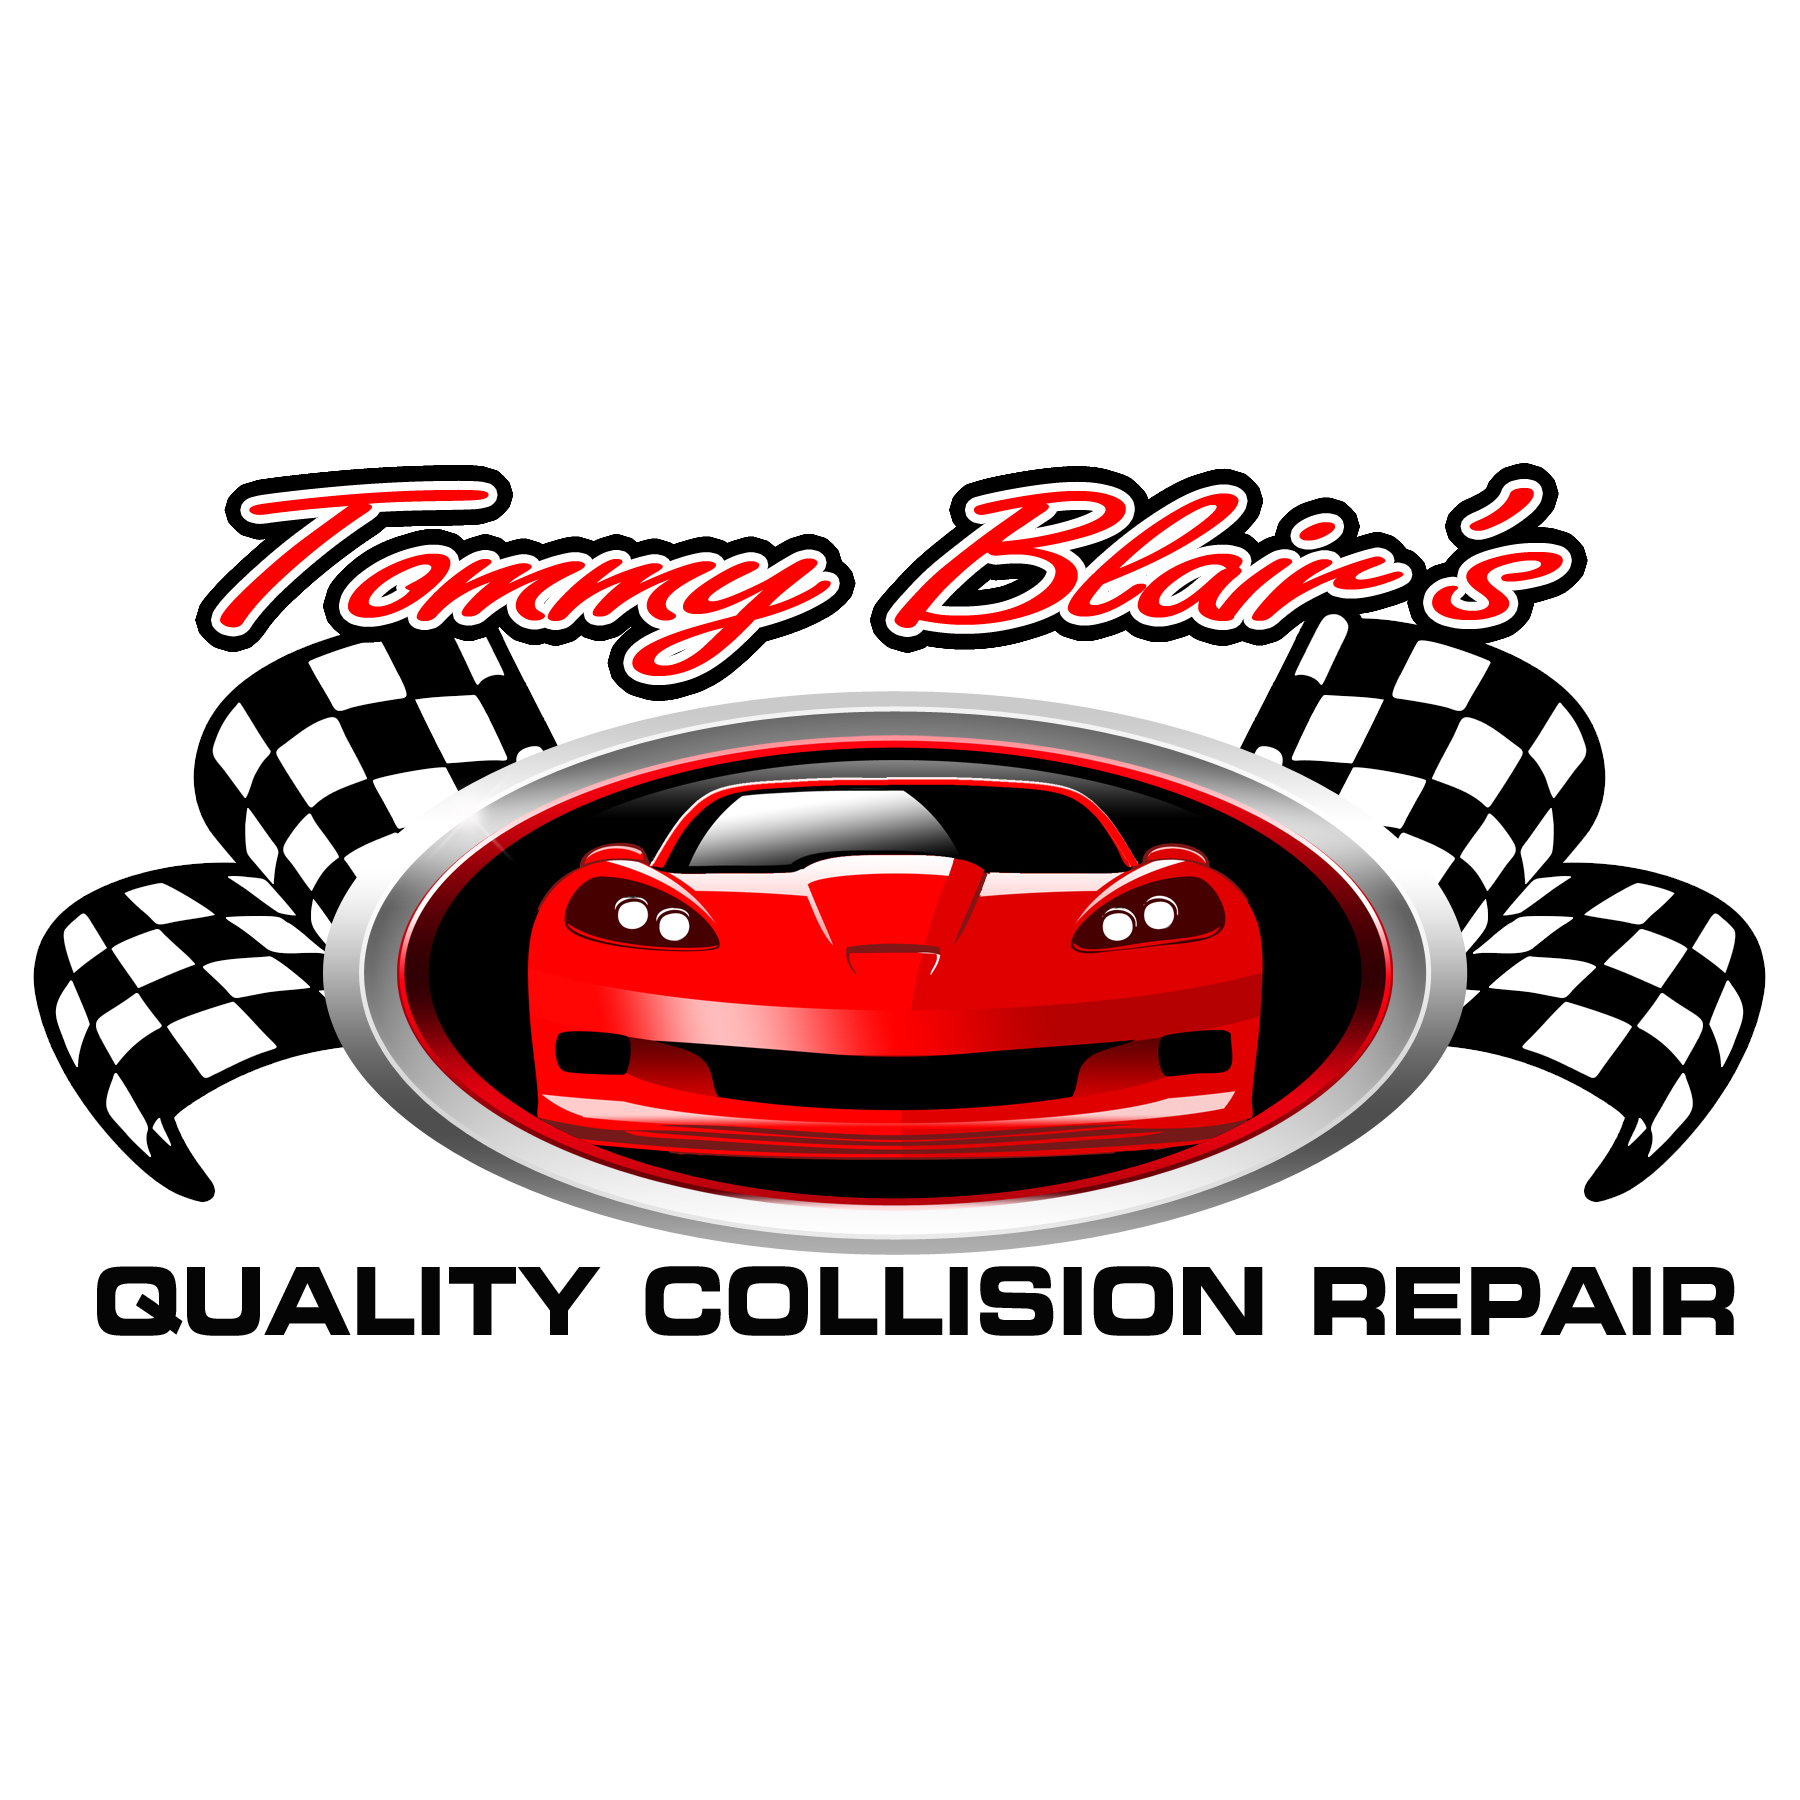 Tommy Blair's Quality Collision Repair image 14